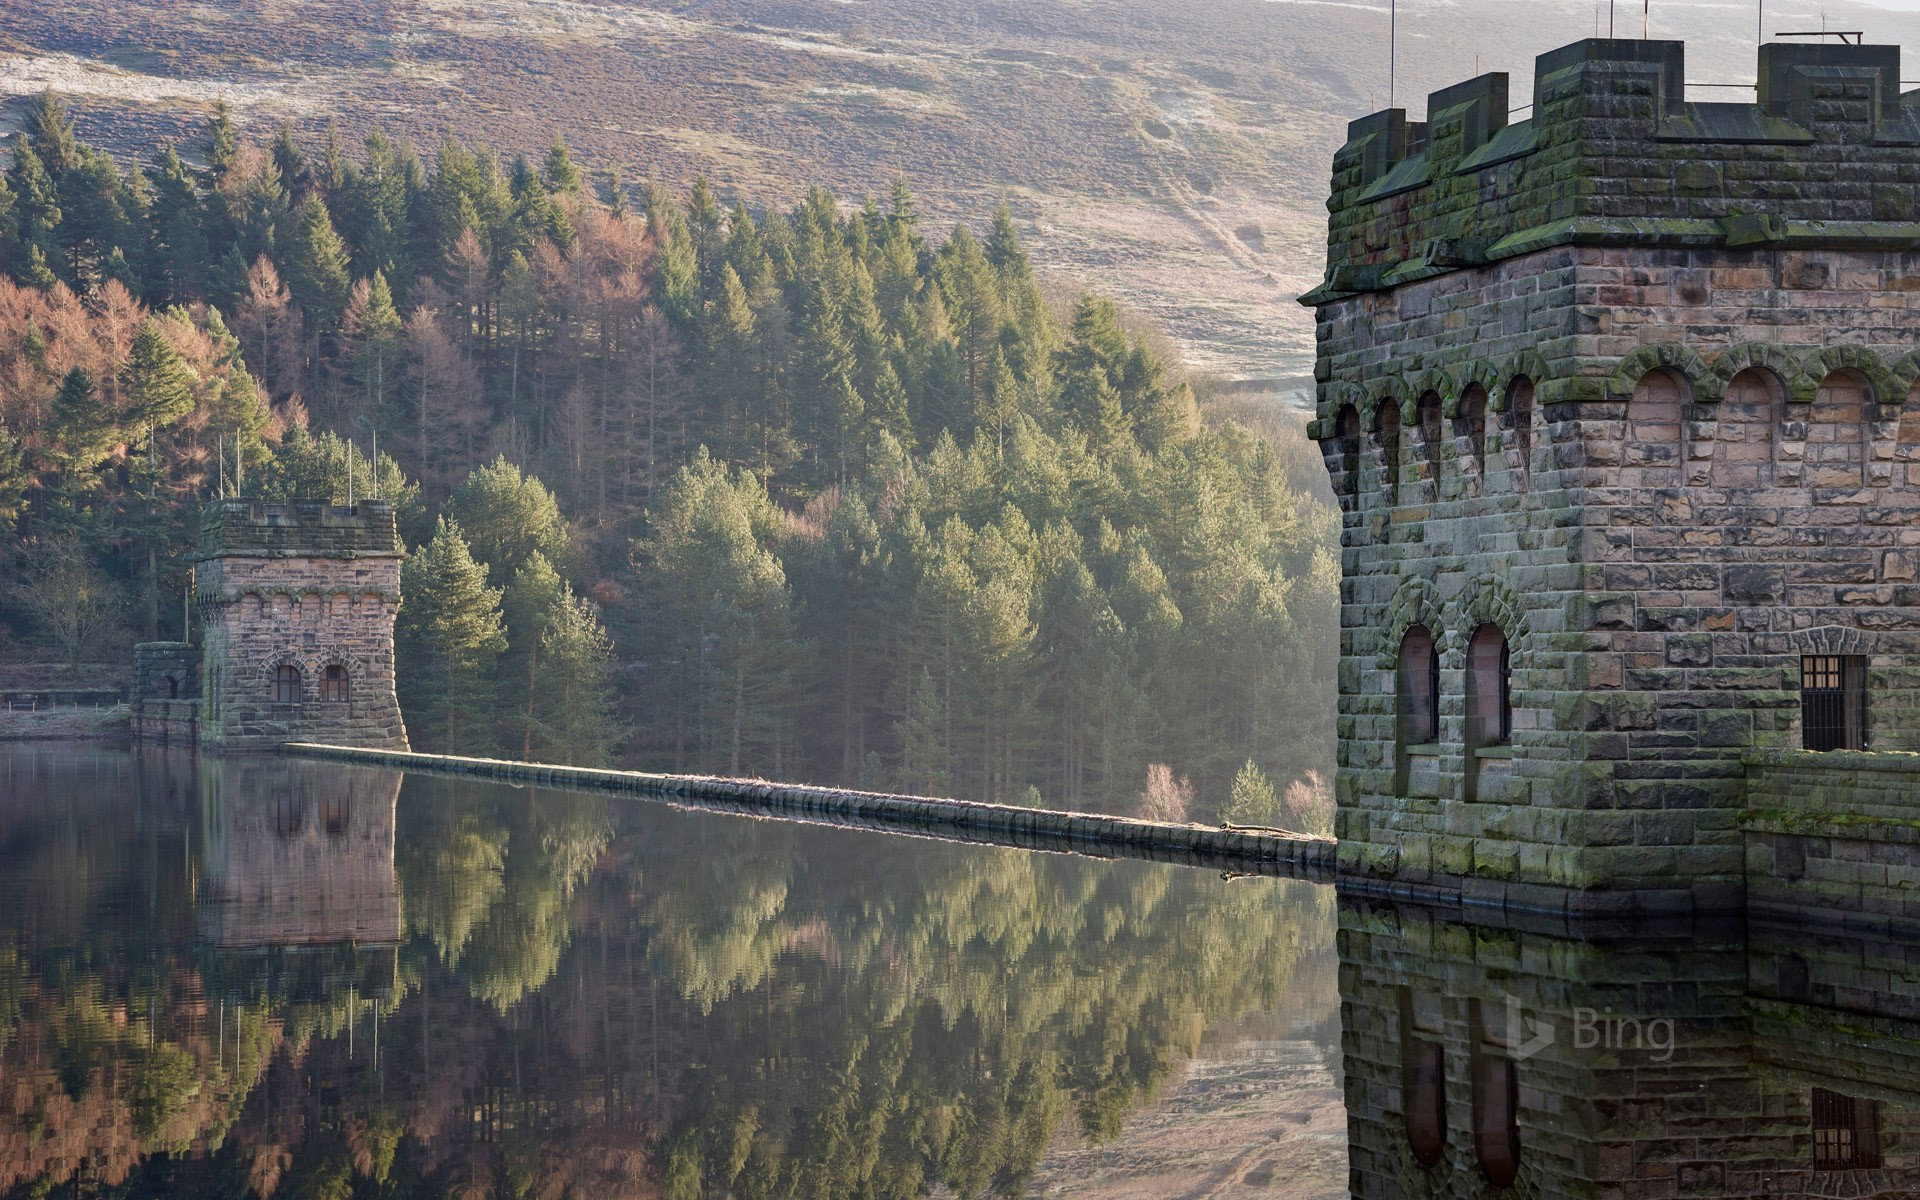 Derwent Reservoir in Derbyshire